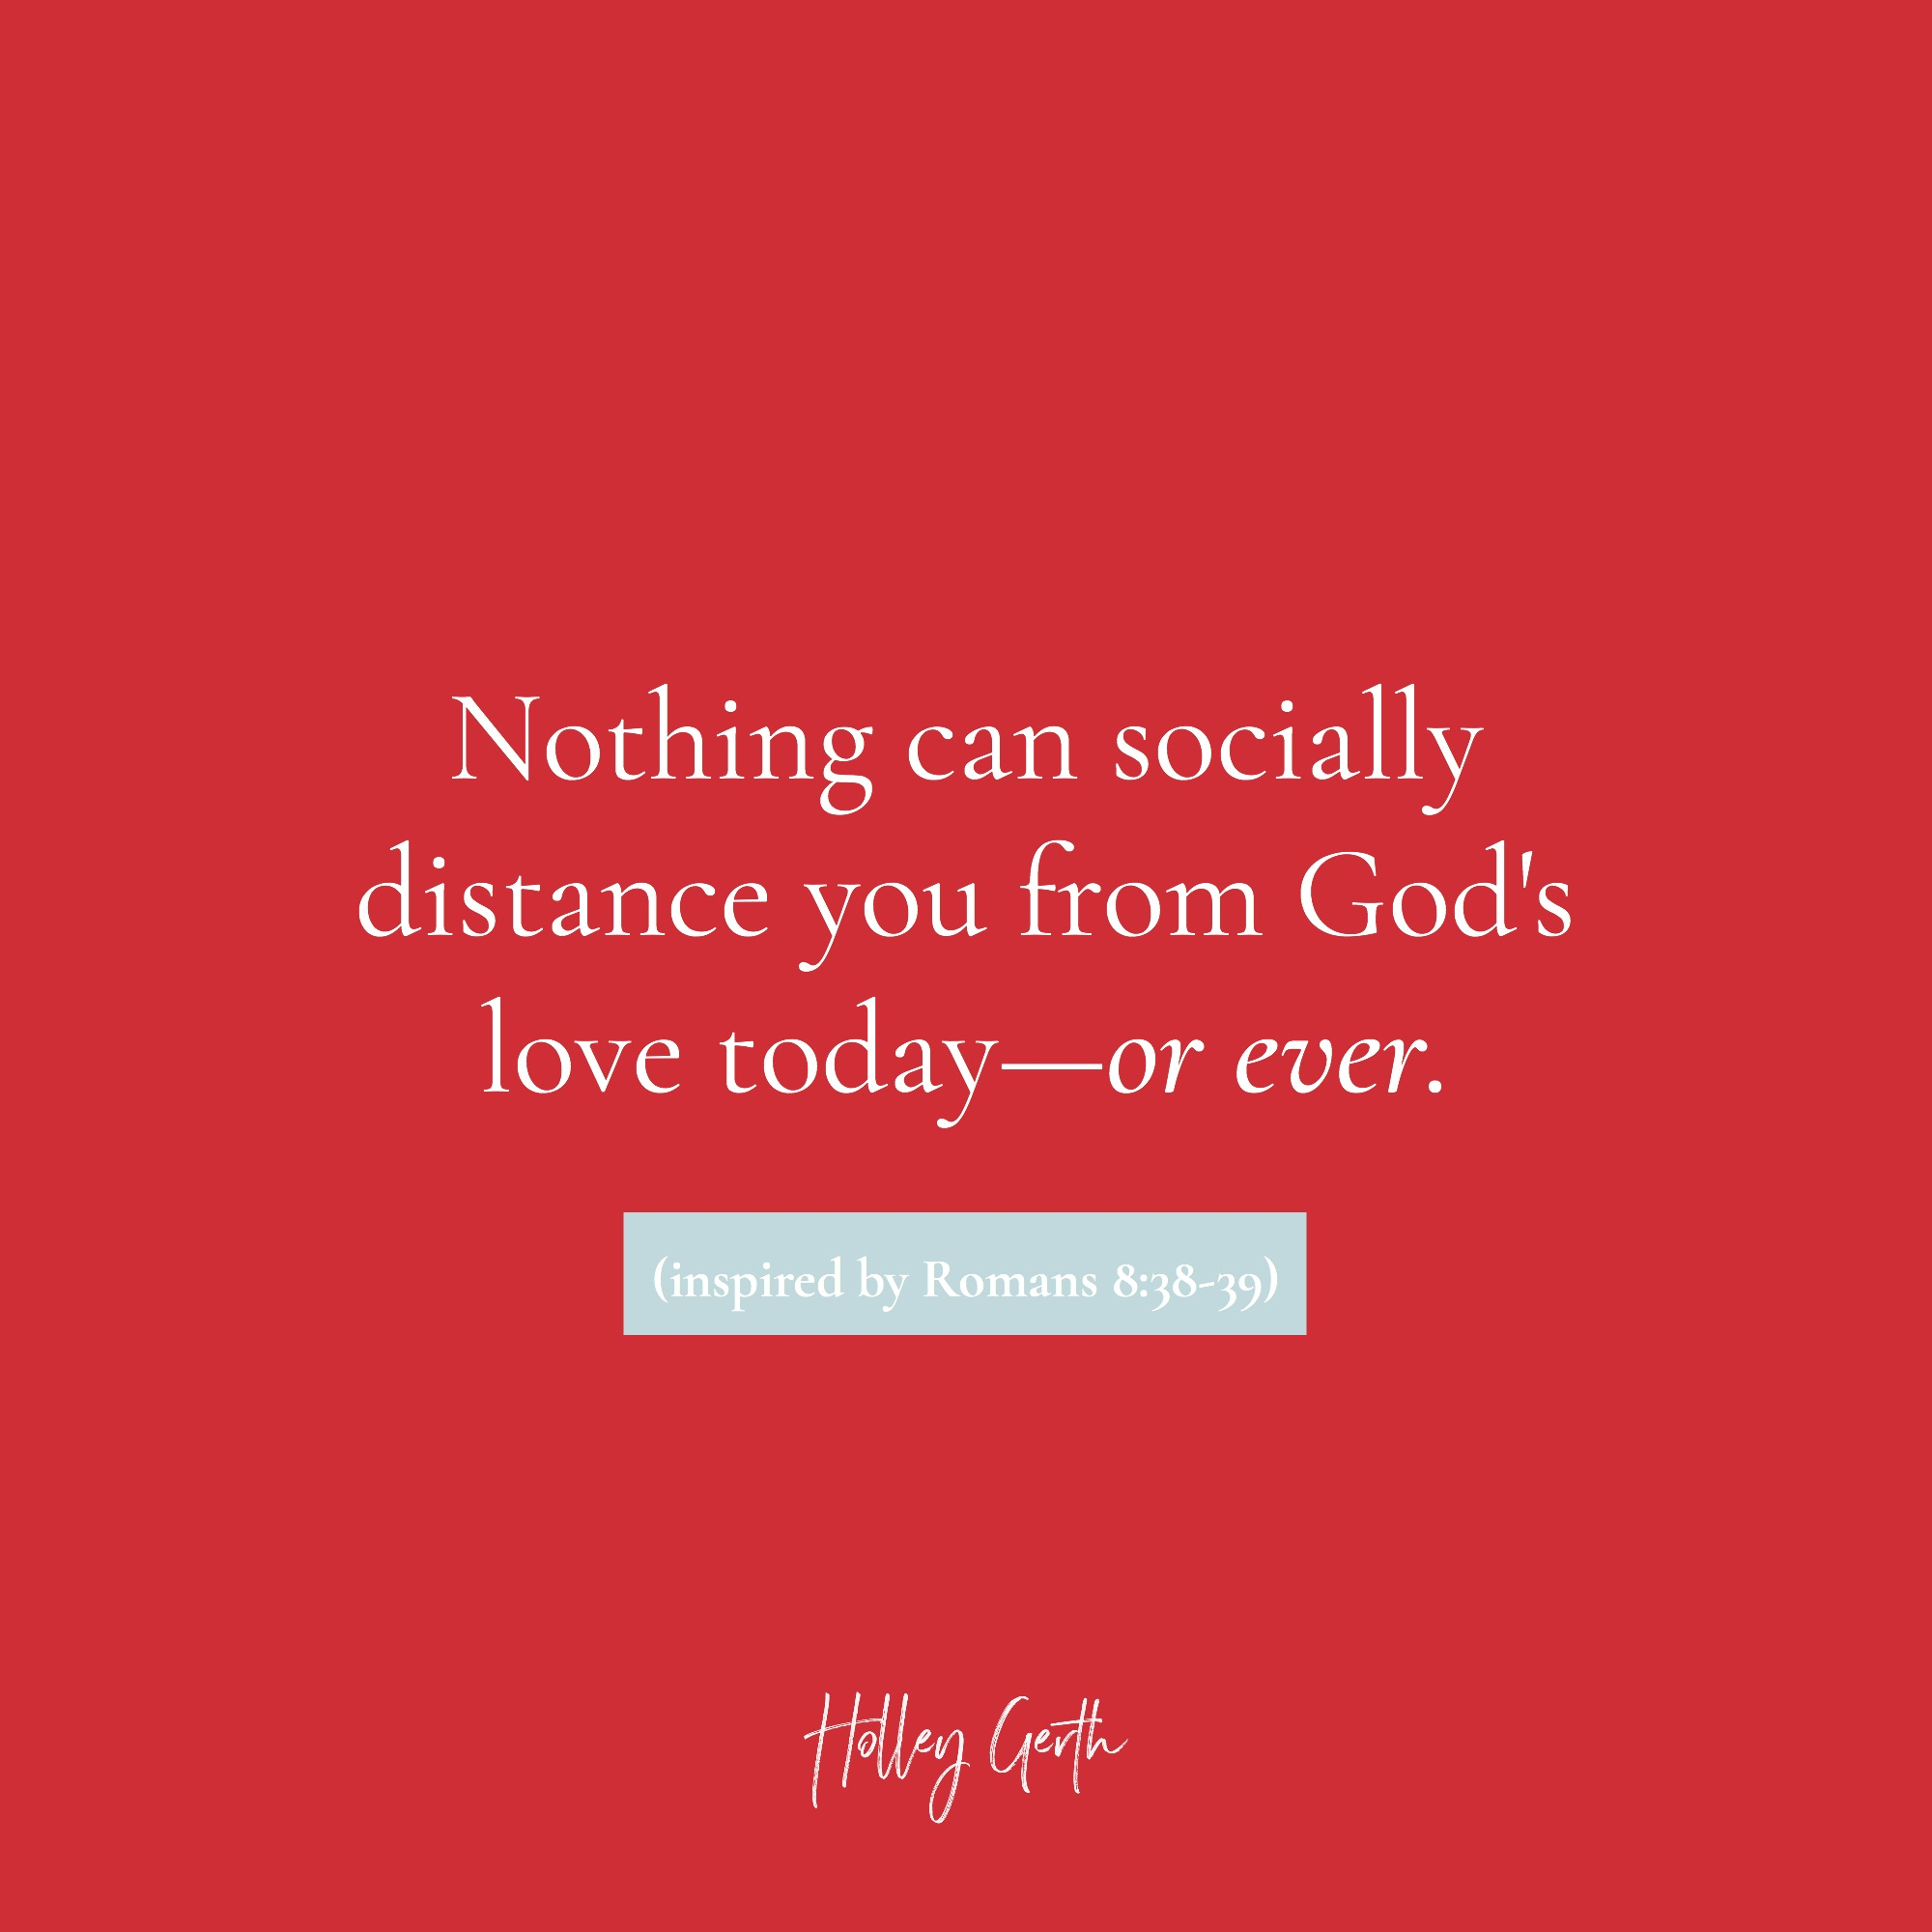 Nothing can socially distance you from God's love today—or ever.